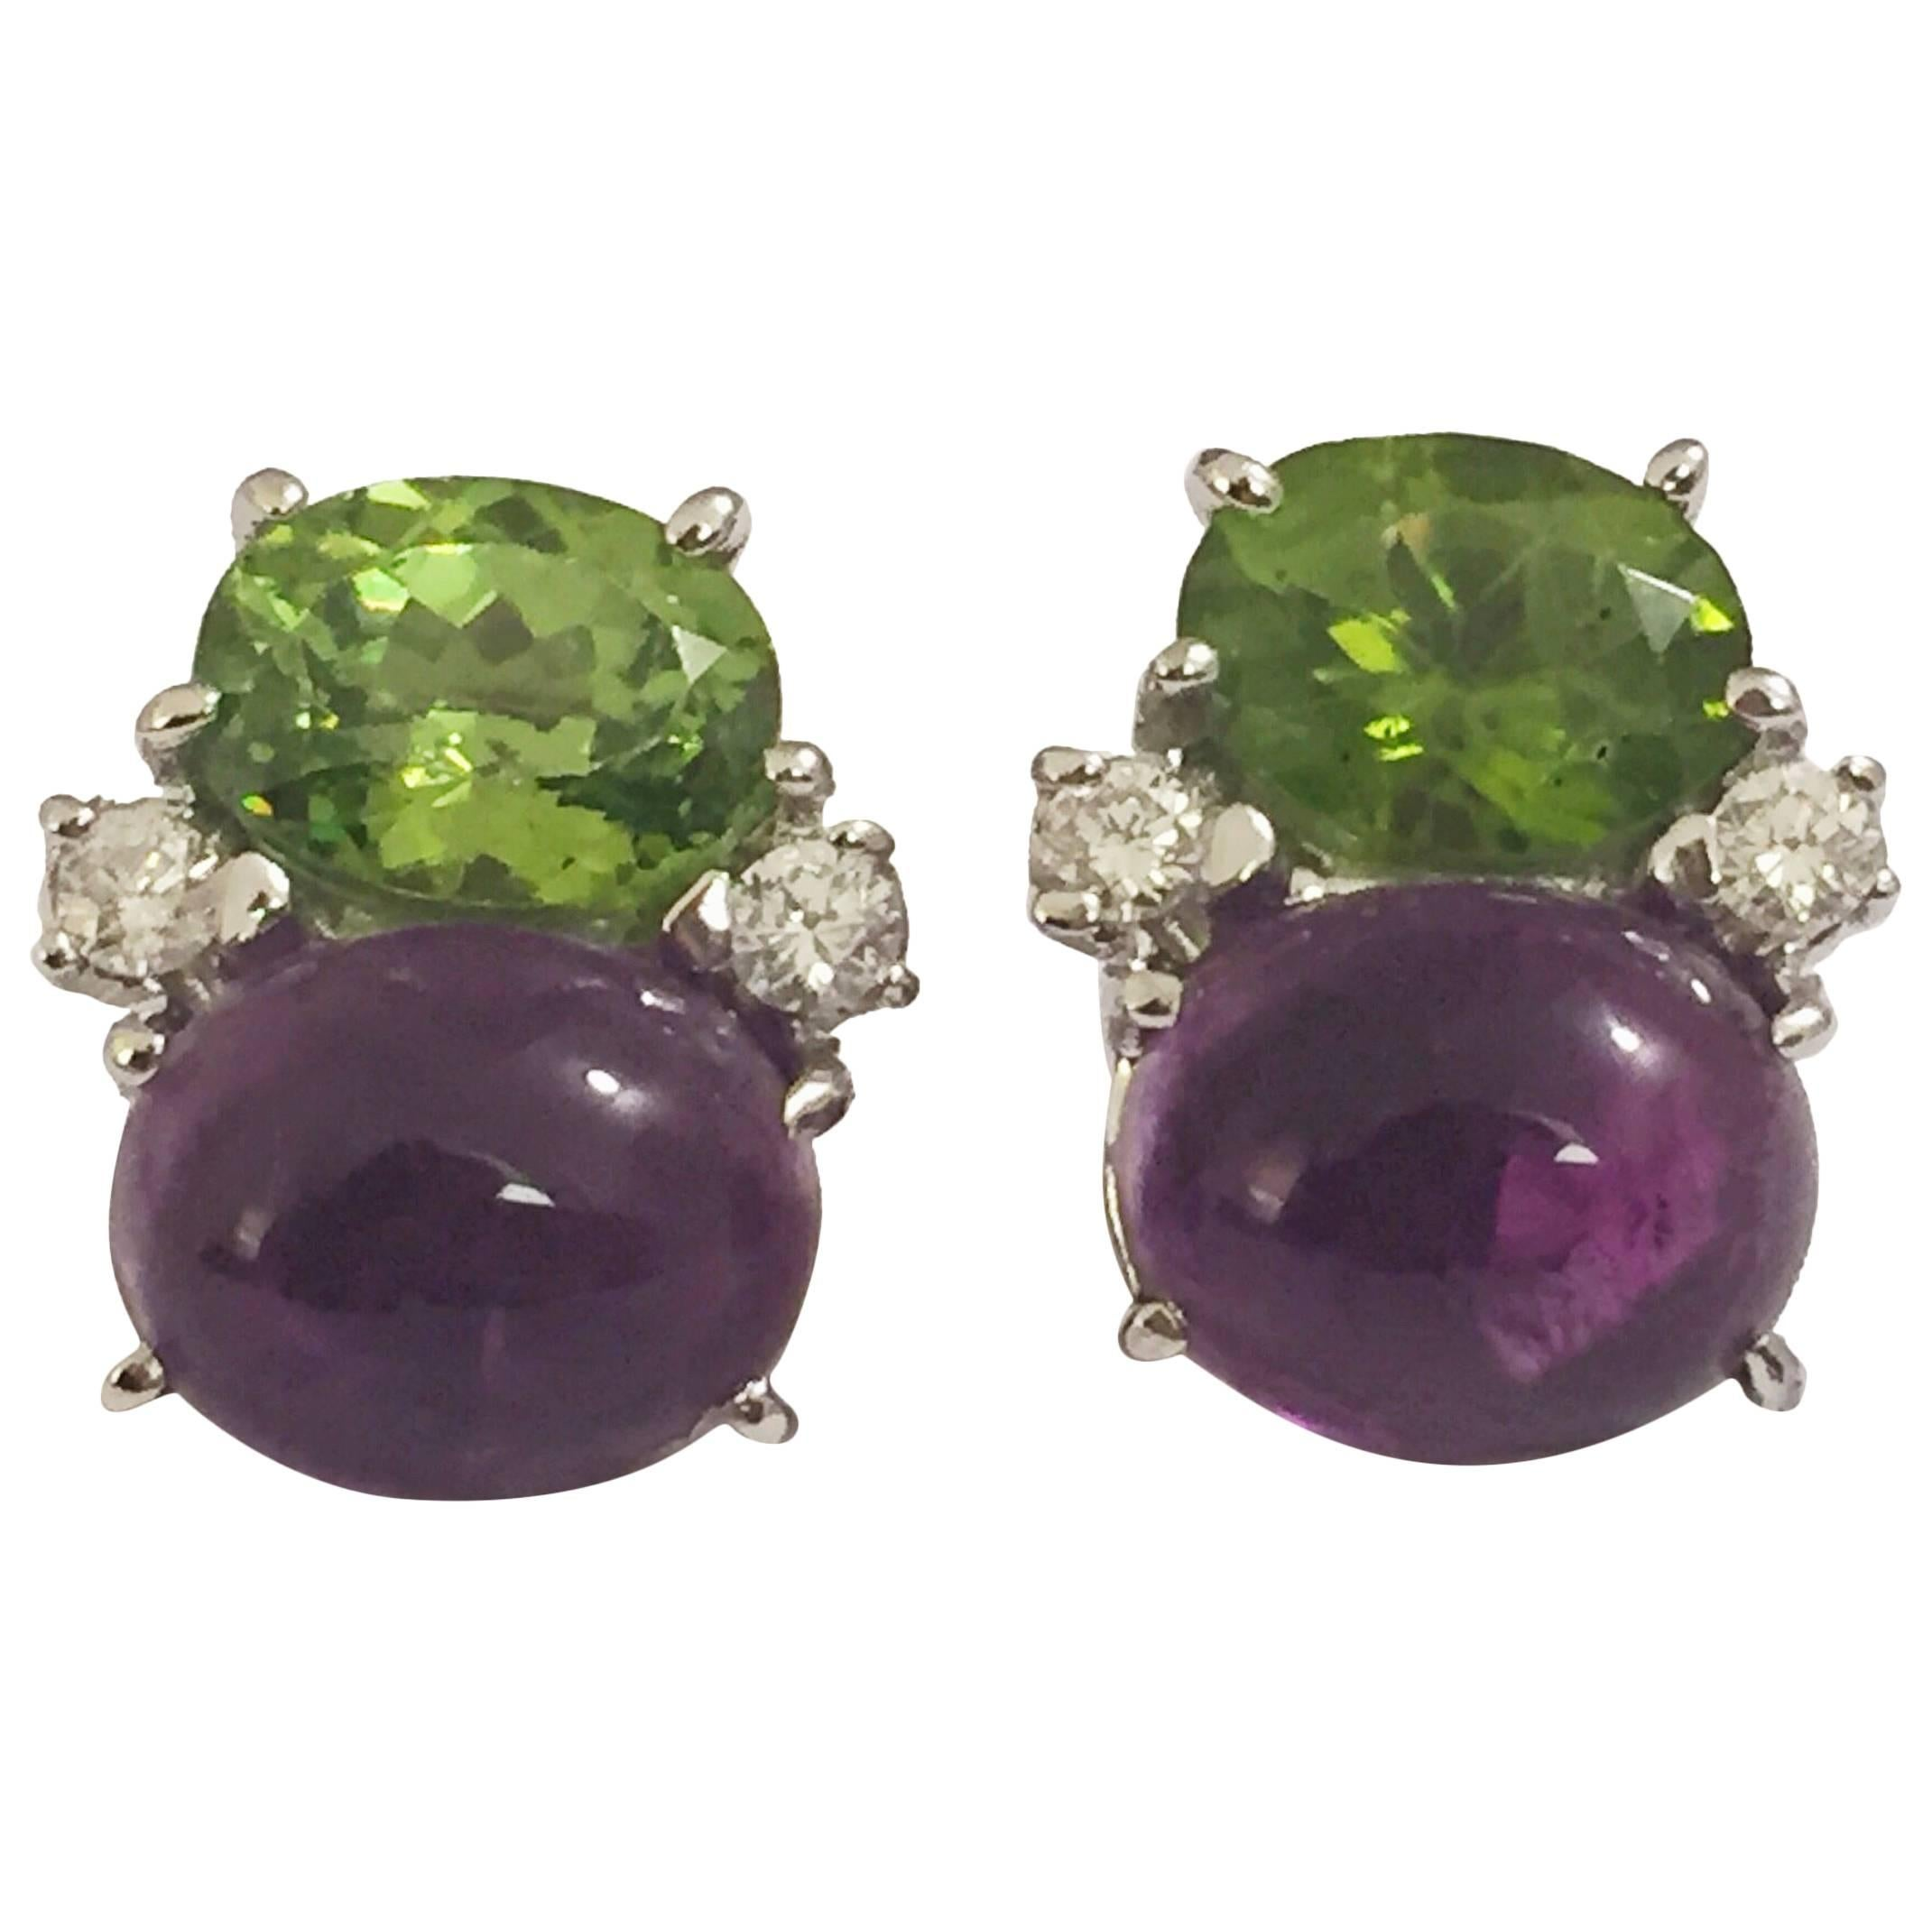 Medium GUM DROP™ Earrings with Peridot and Cabochon Amethyst and Diamonds